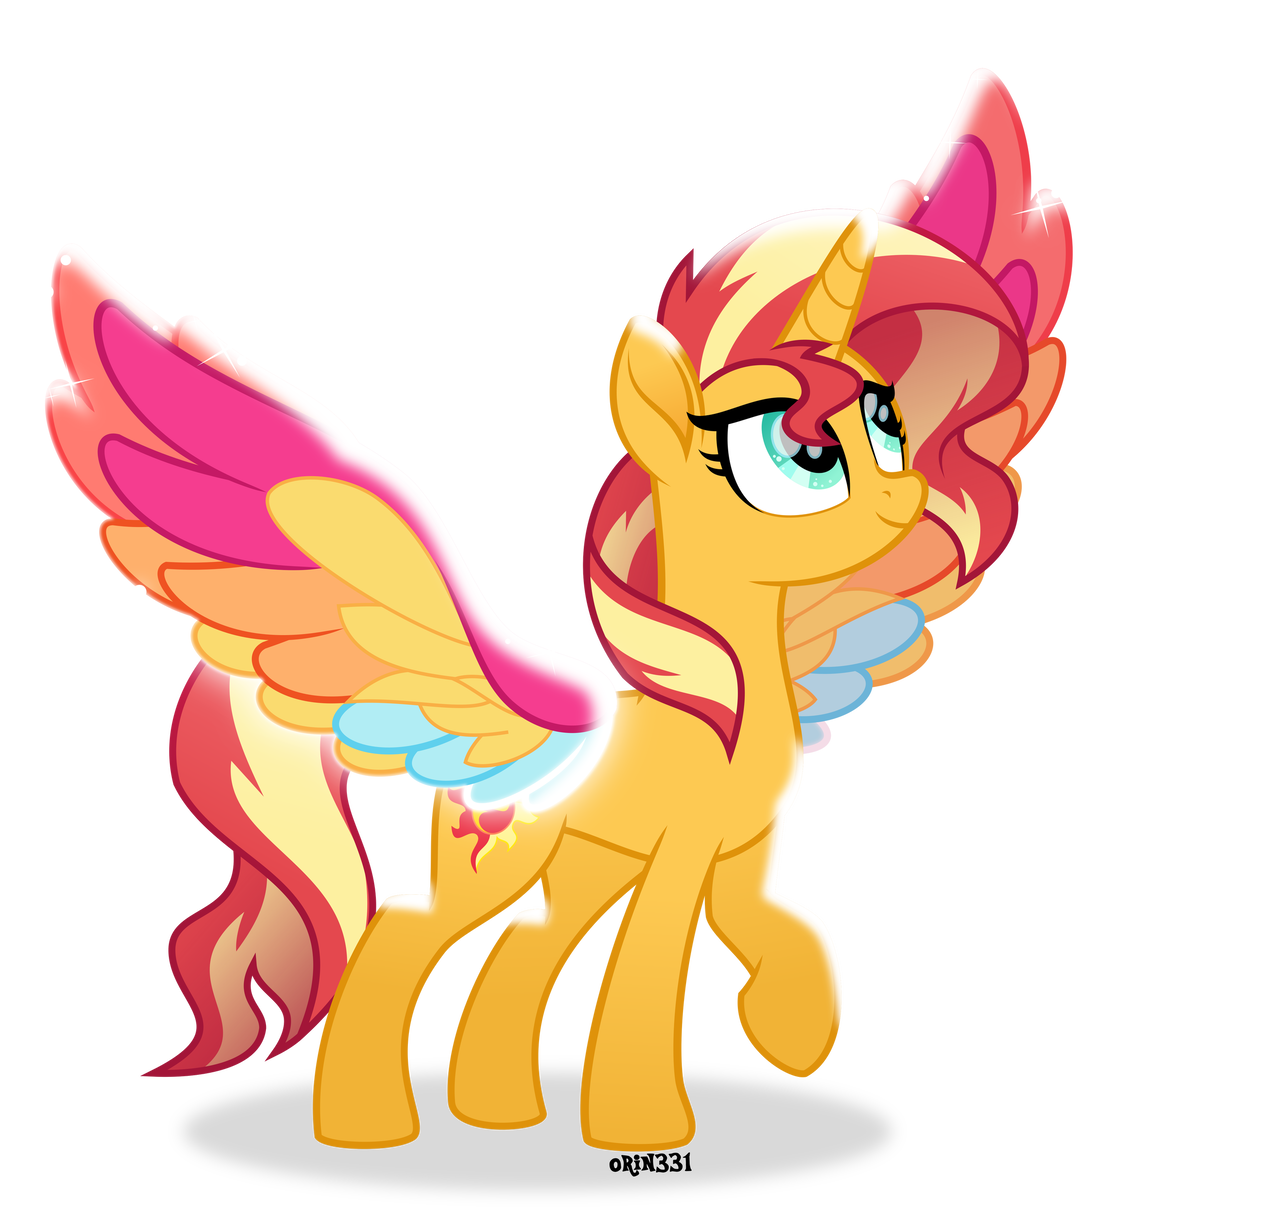 Rainbow Wings Sunset Shimmer By Orin331 On Deviantart My Little Pony Drawing My Little Pony Pictures My Little Pony Princess